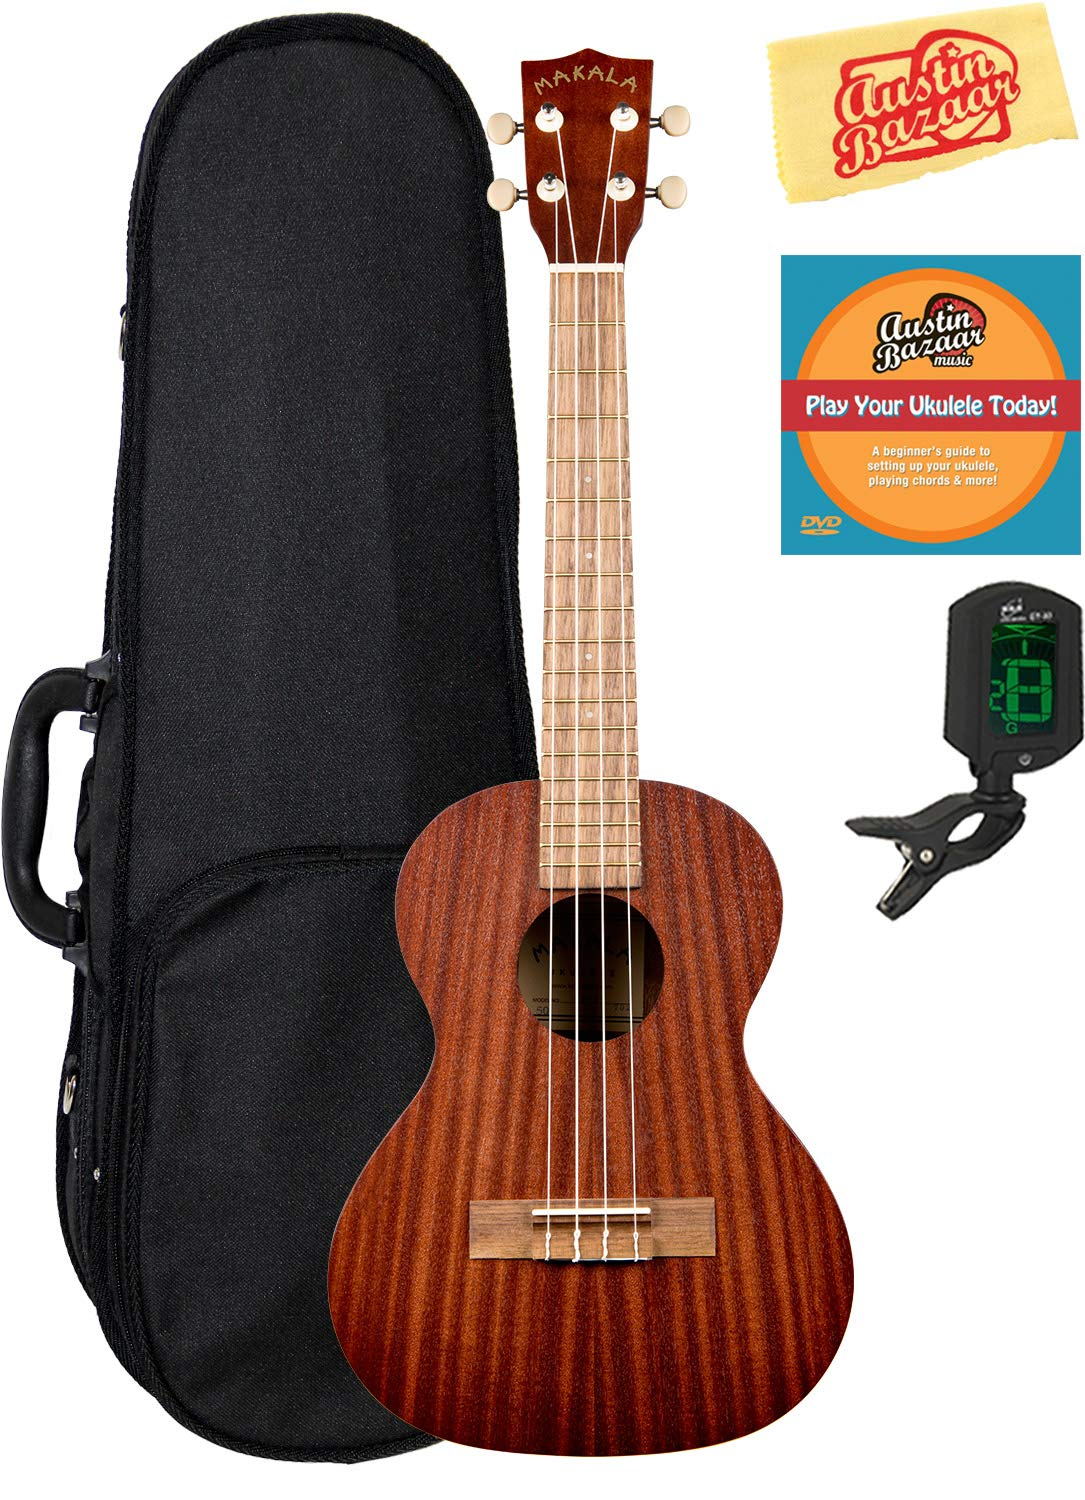 Kala MK-T Makala Tenor Ukulele Bundle with Hard Case, Tuner, and Polishing Cloth - White Accents MK-T-COMBO-DLX